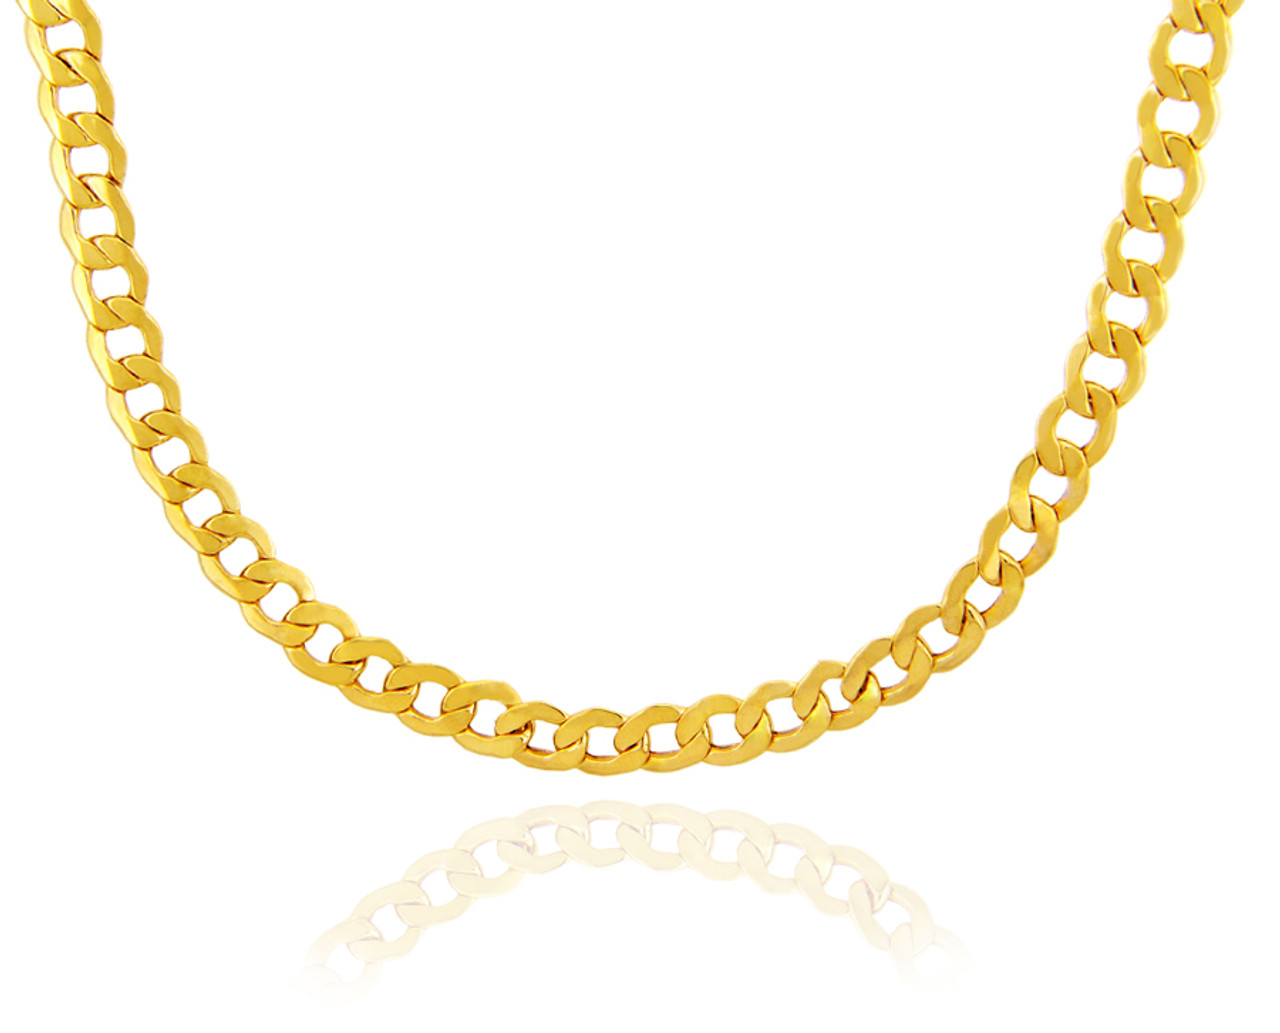 yellow chain bracelets women necklace rope solid necklaces mens gold itm